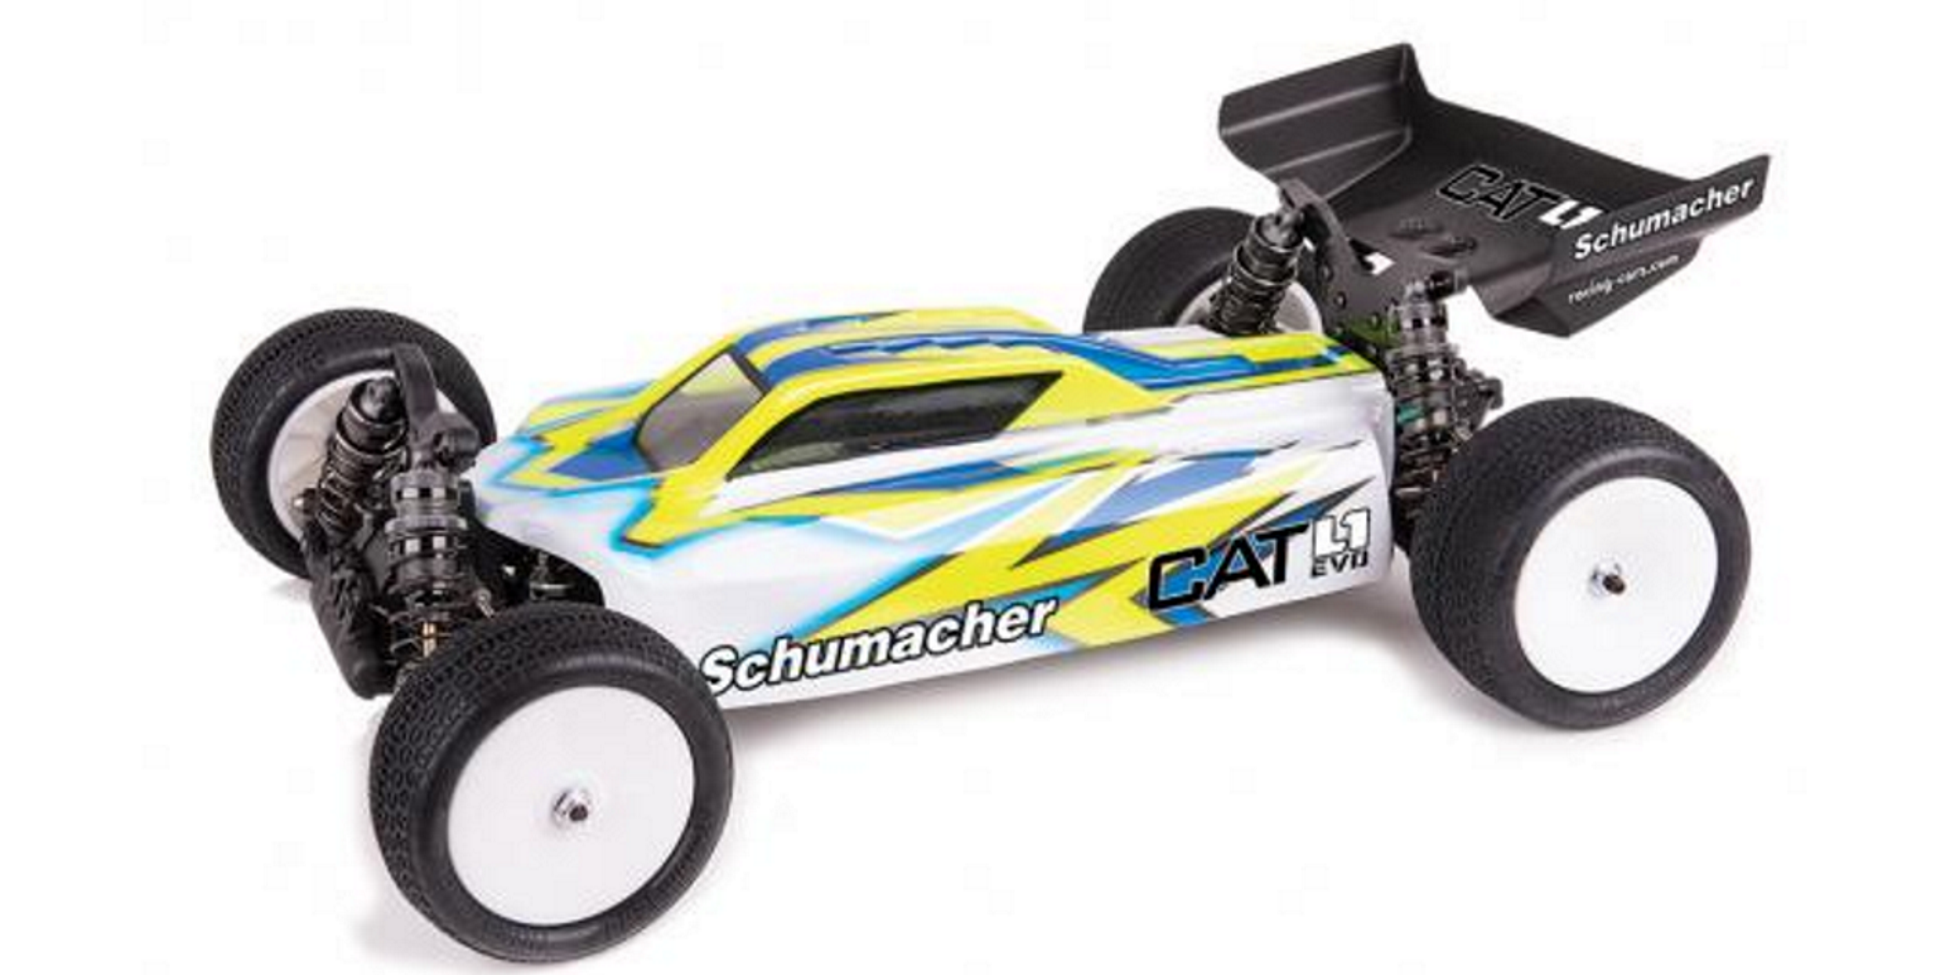 Schumacher---Evo---CAT-L1-Kit-resize